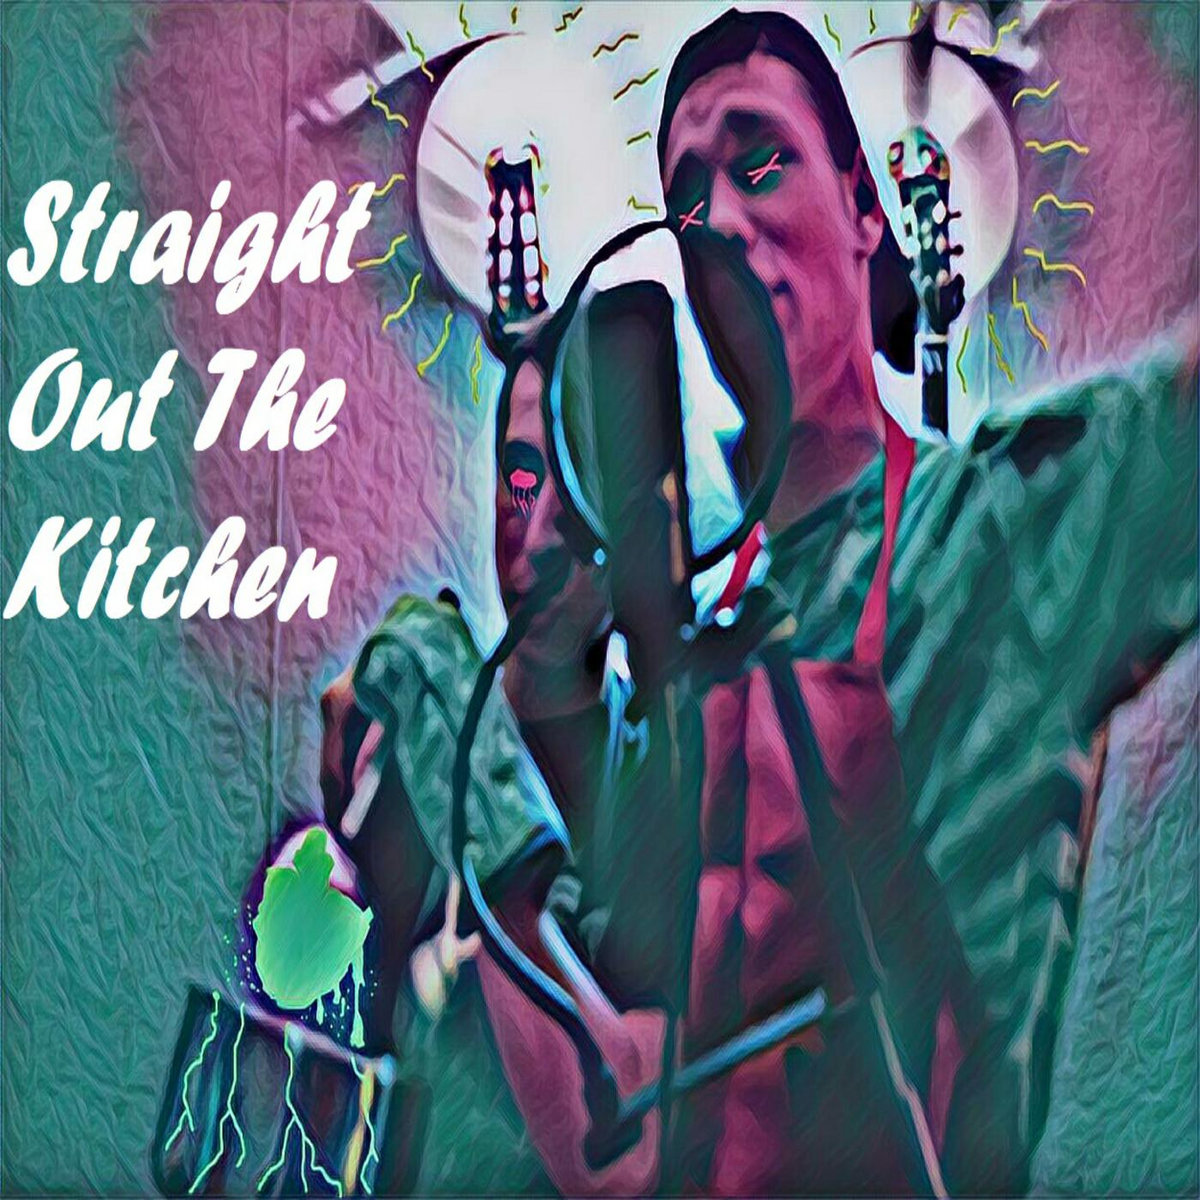 Straight Out The Kitchen | The M. A. Duke